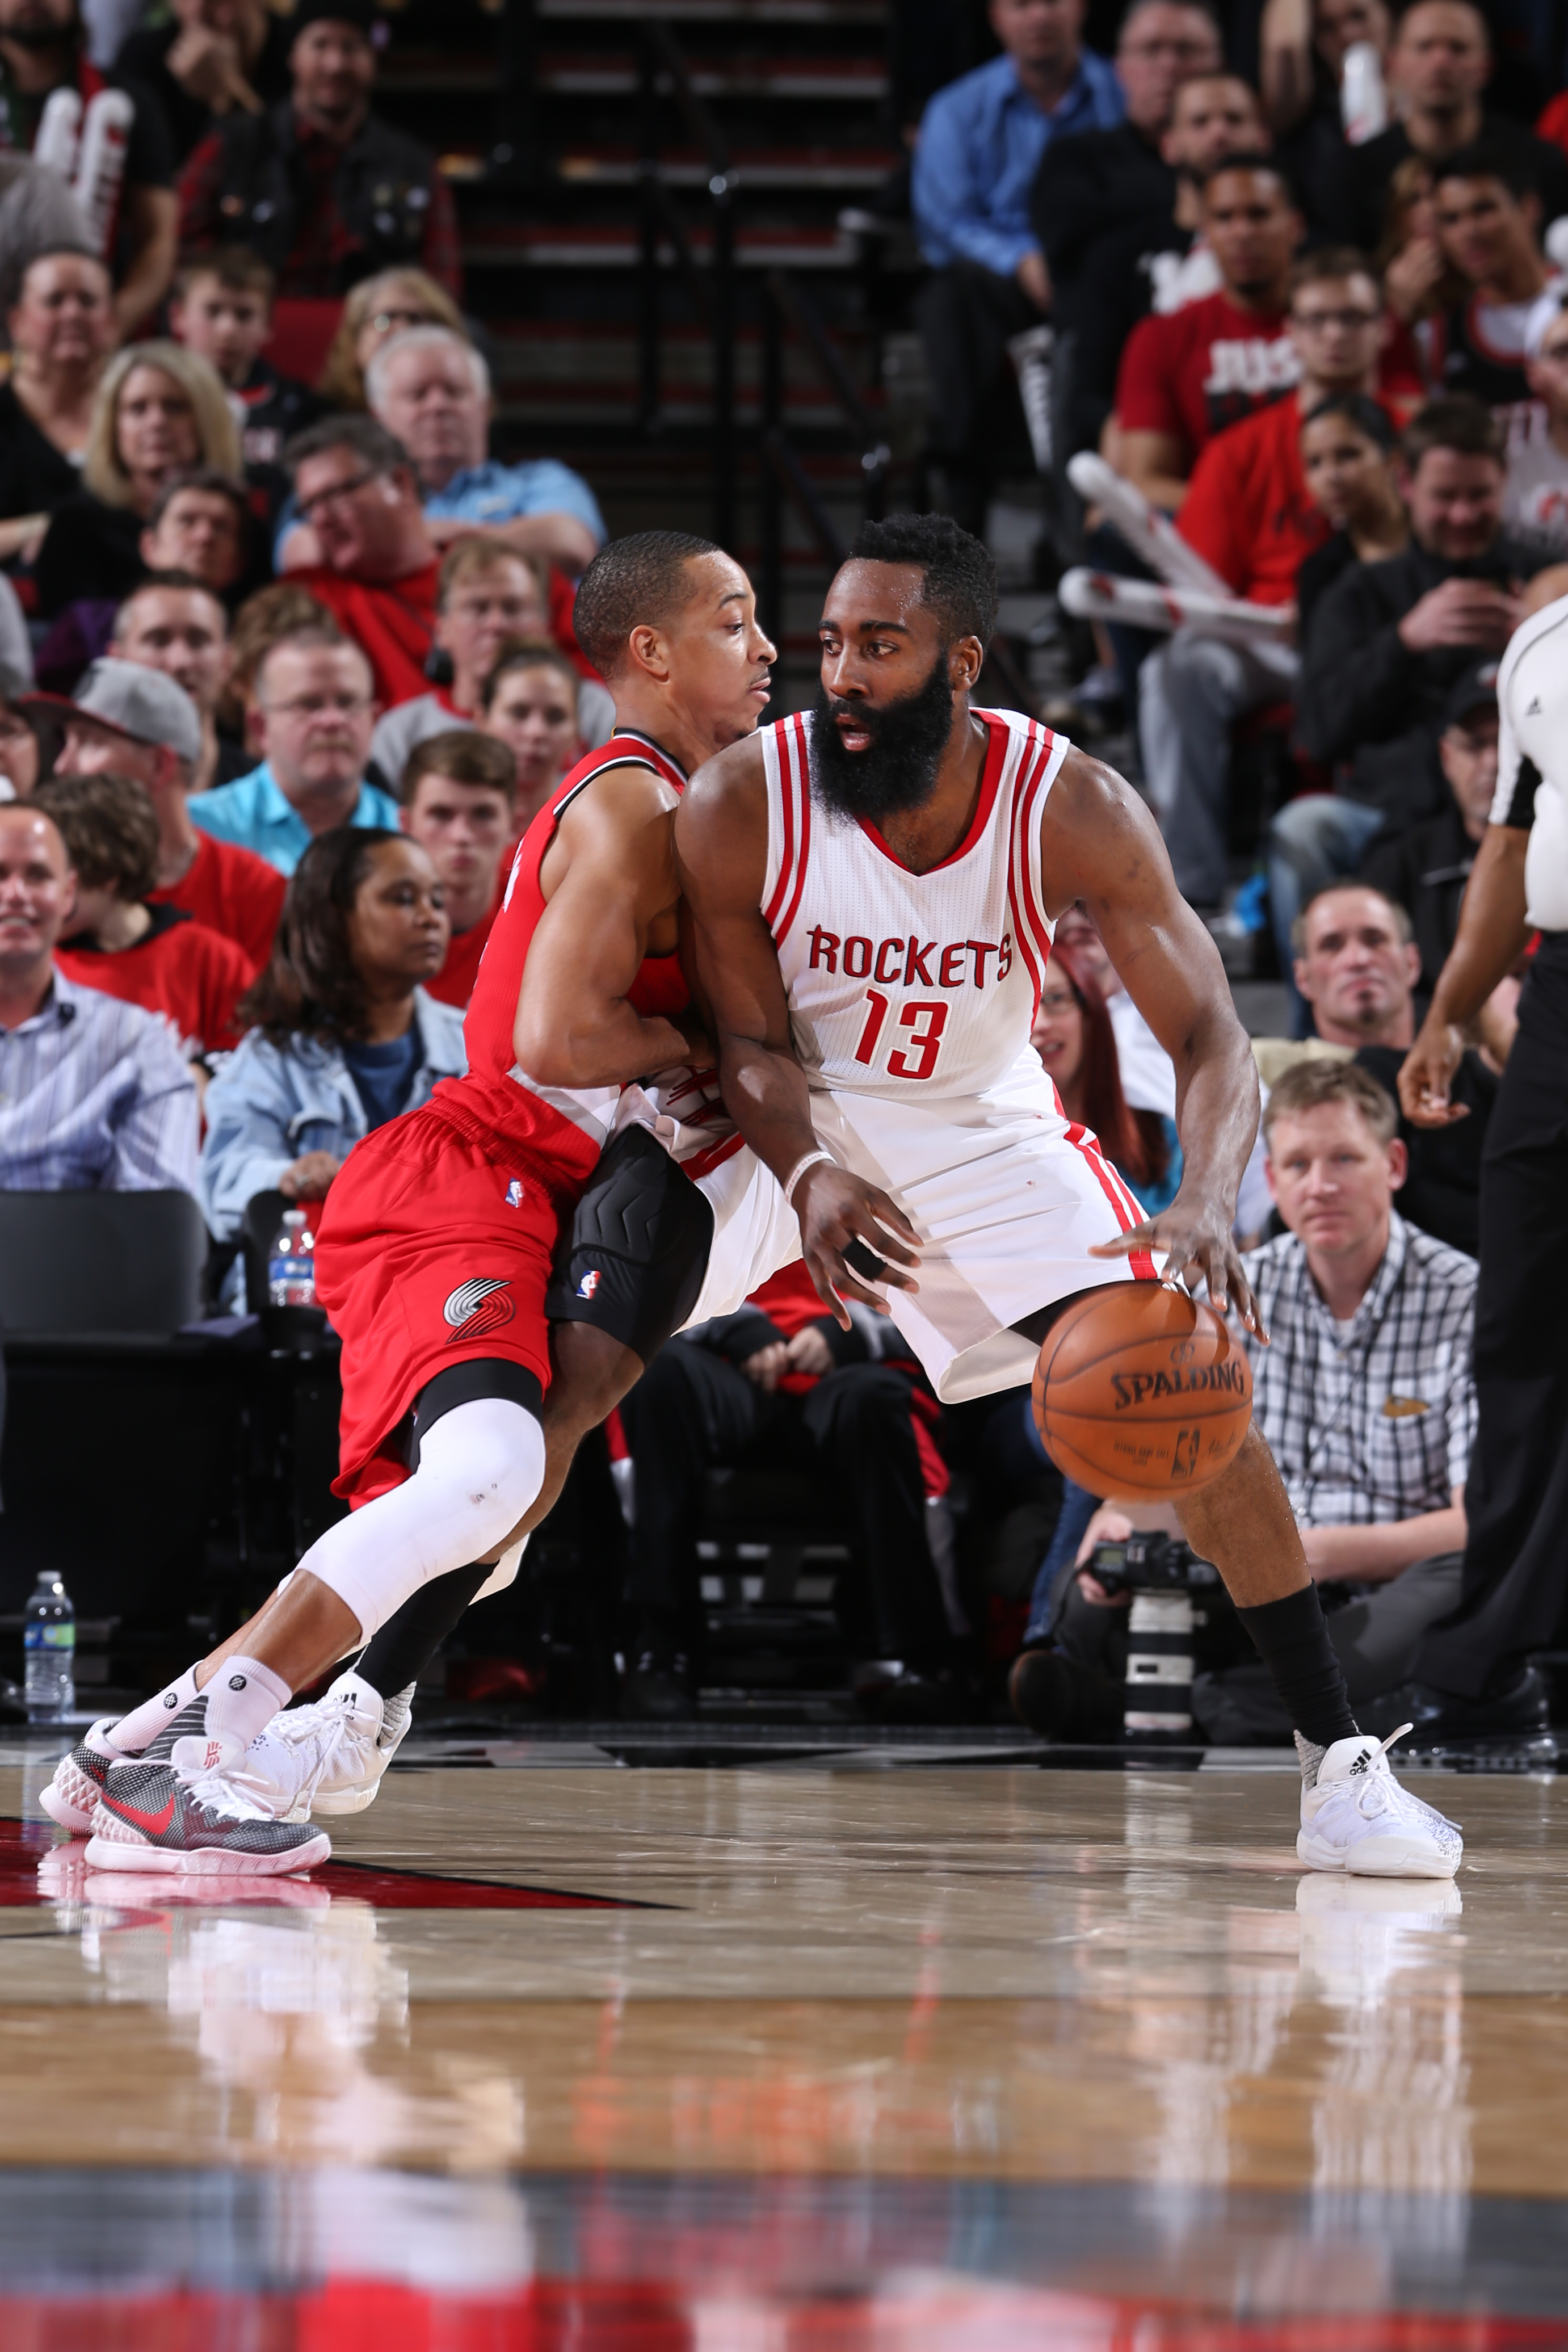 PORTLAND, OR - FEBRUARY 25: James Harden #13 of the Houston Rockets drives to the basket against the Portland Trail Blazers during the game on February 25, 2016 at Moda Center in Portland, Oregon. (Photo by Sam Forencich/NBAE via Getty Images)